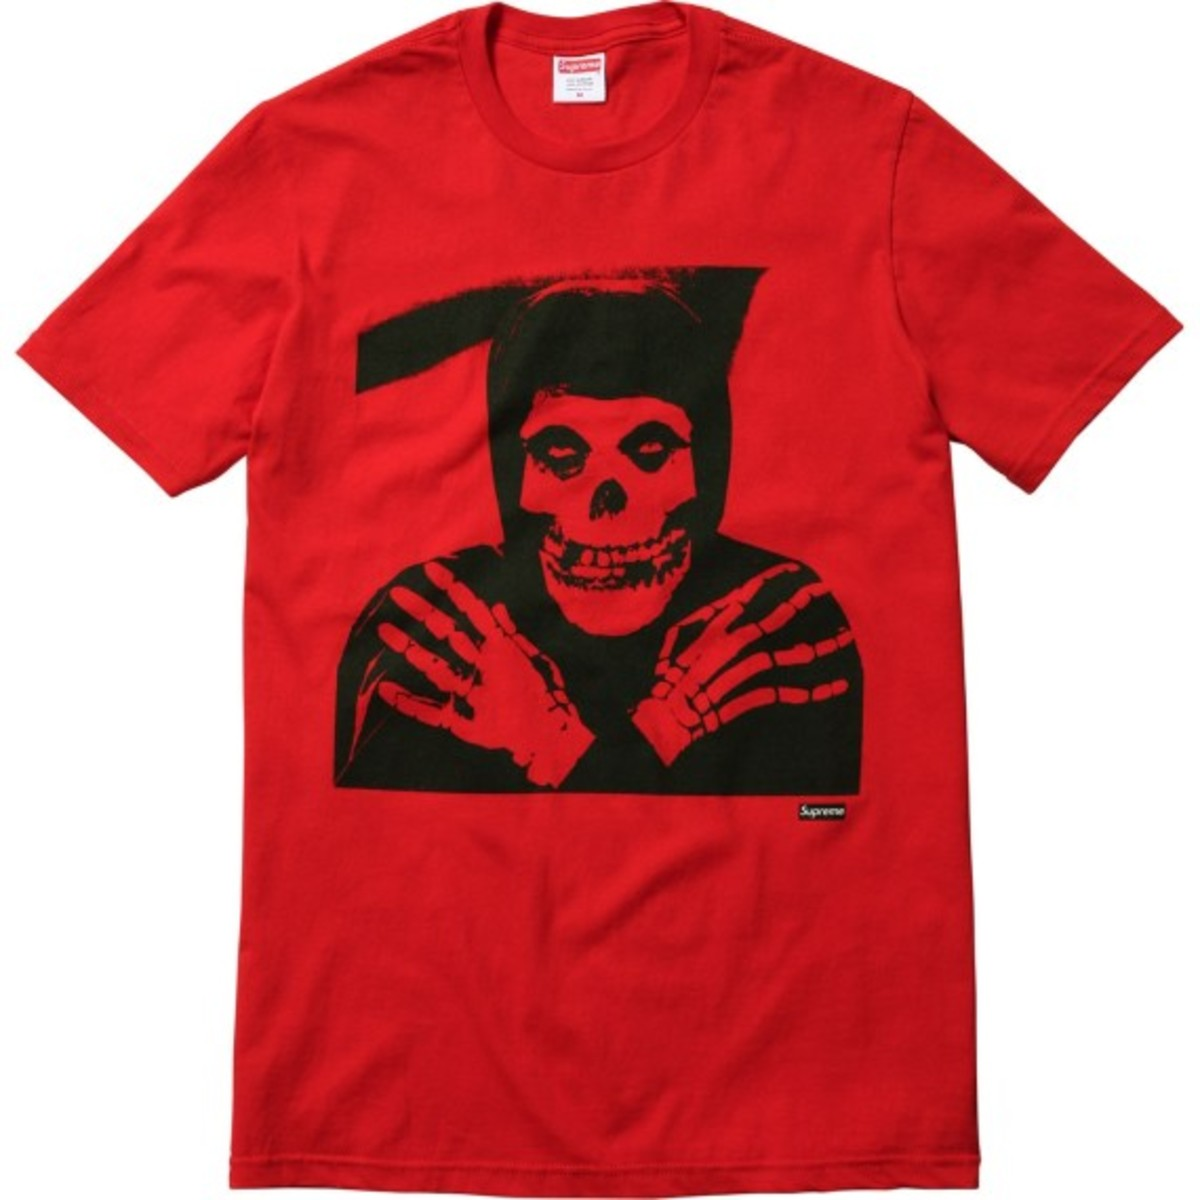 the-misfits-x-supreme-capsule-collection-available-22